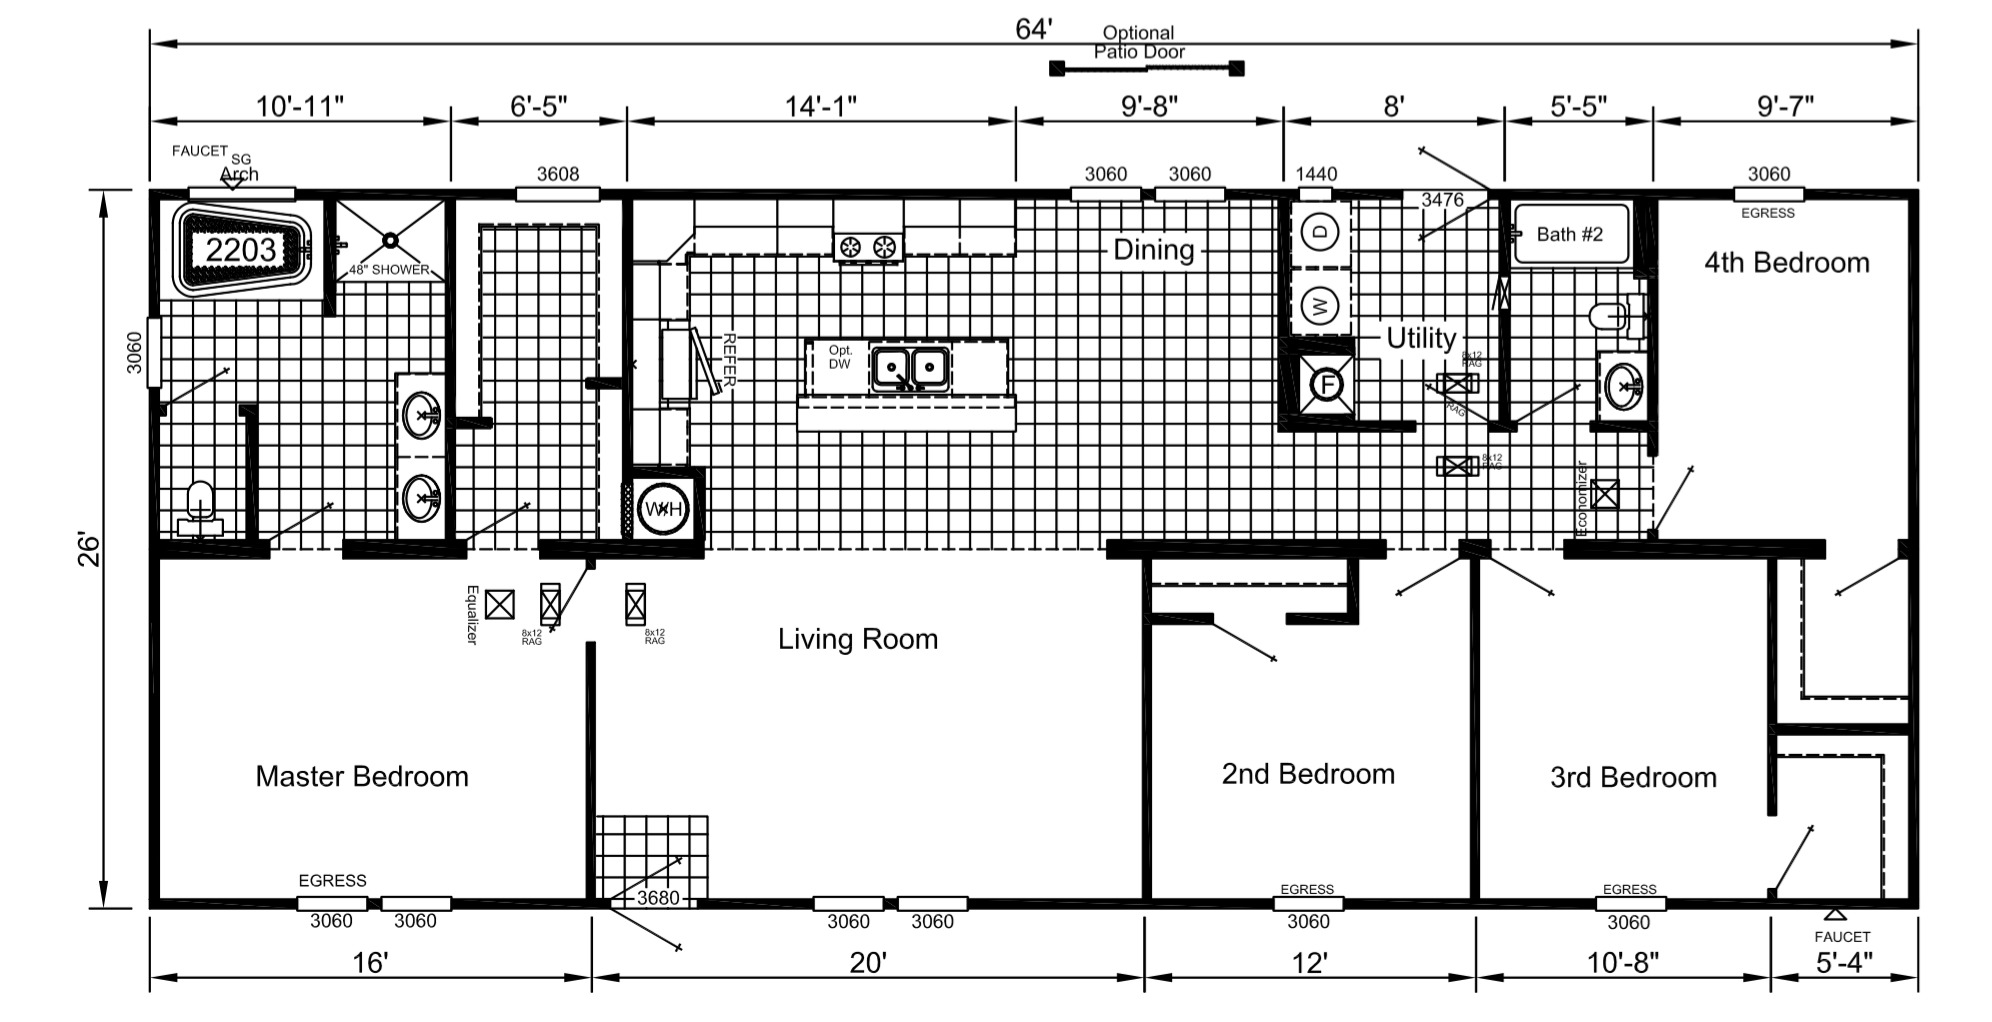 Floor plans in excel 28 images 28 create floor plan for Free floor plan template excel